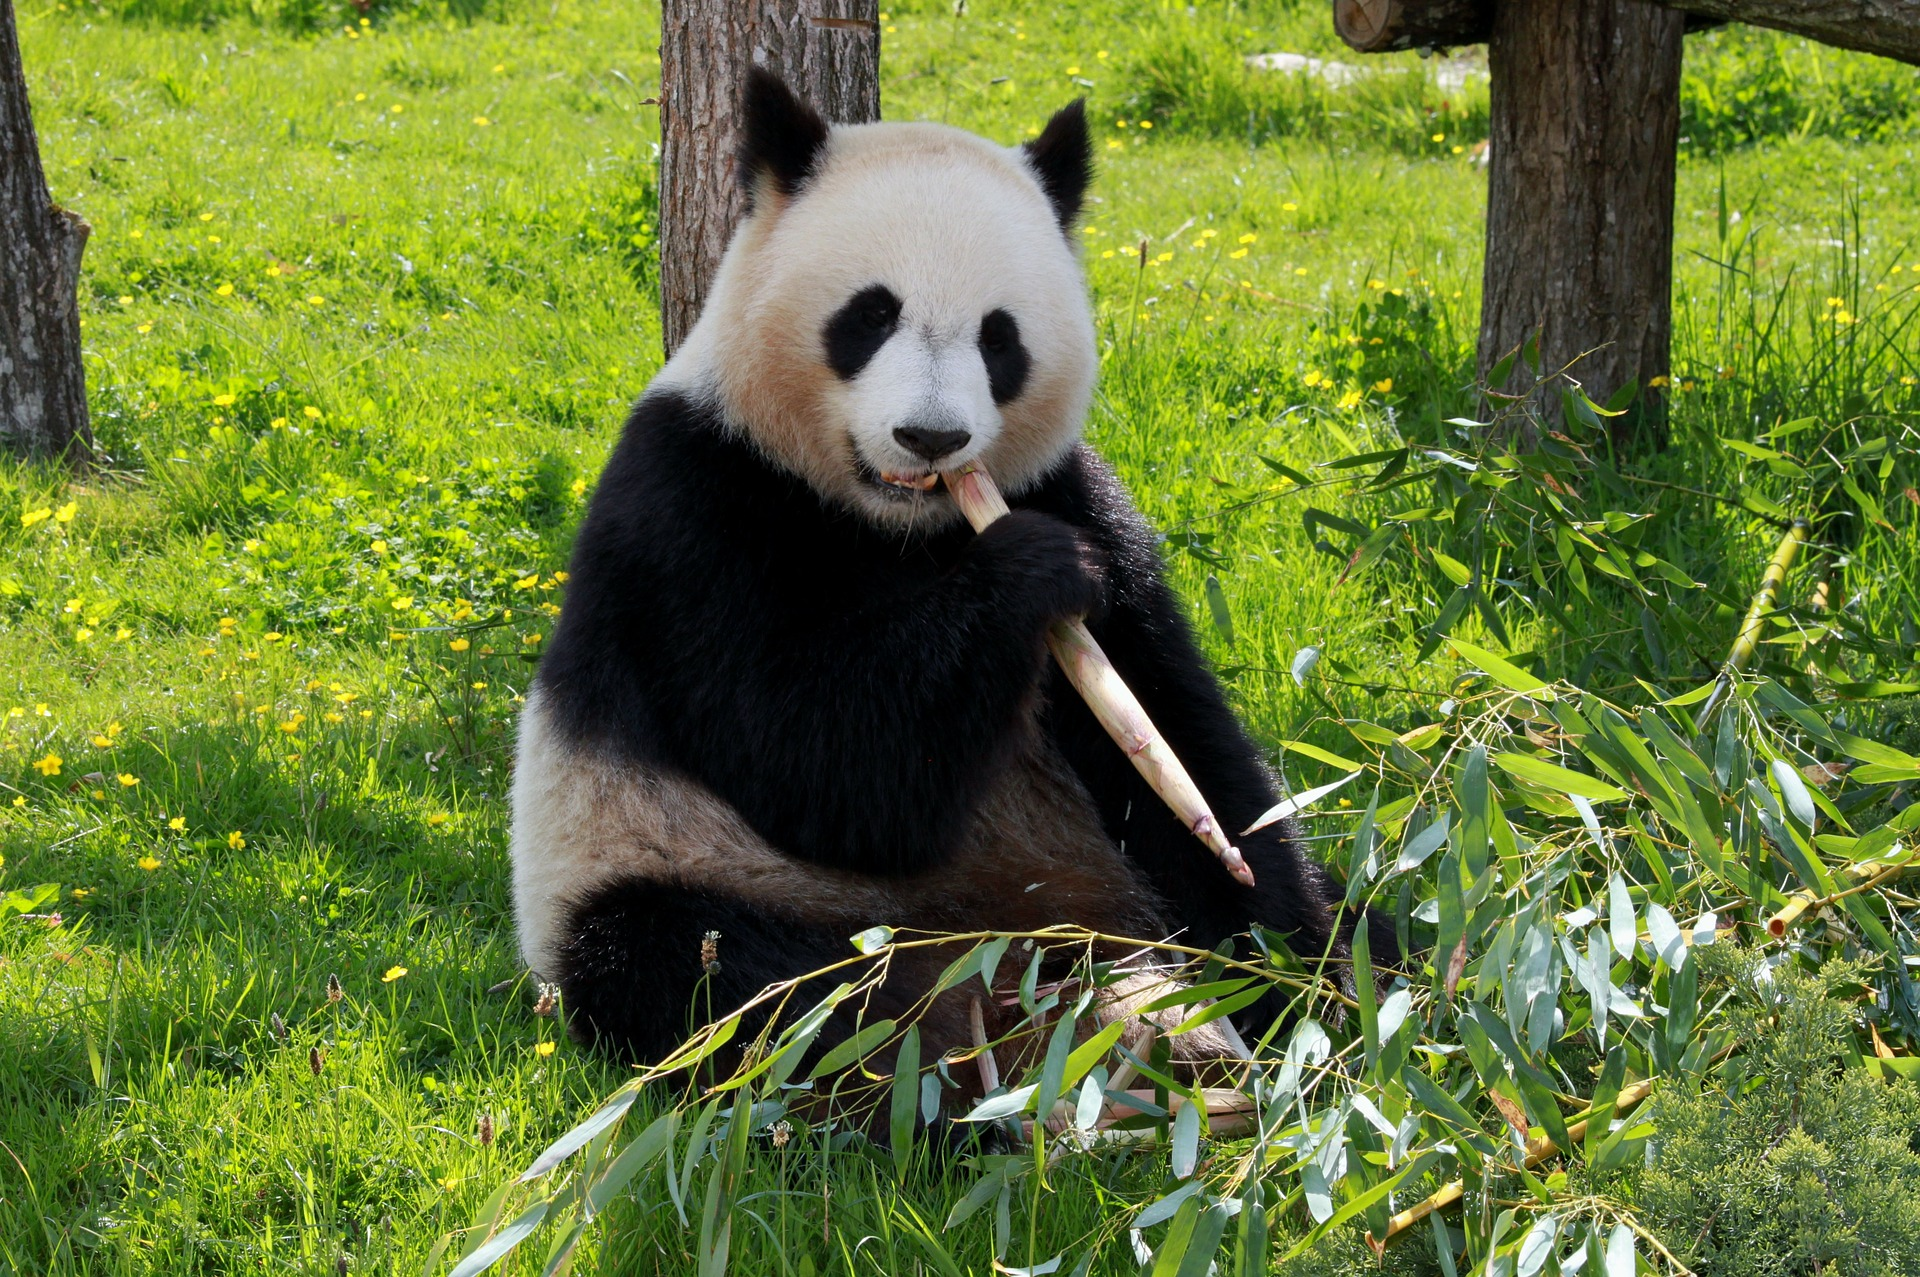 Panda_in_Chengdu